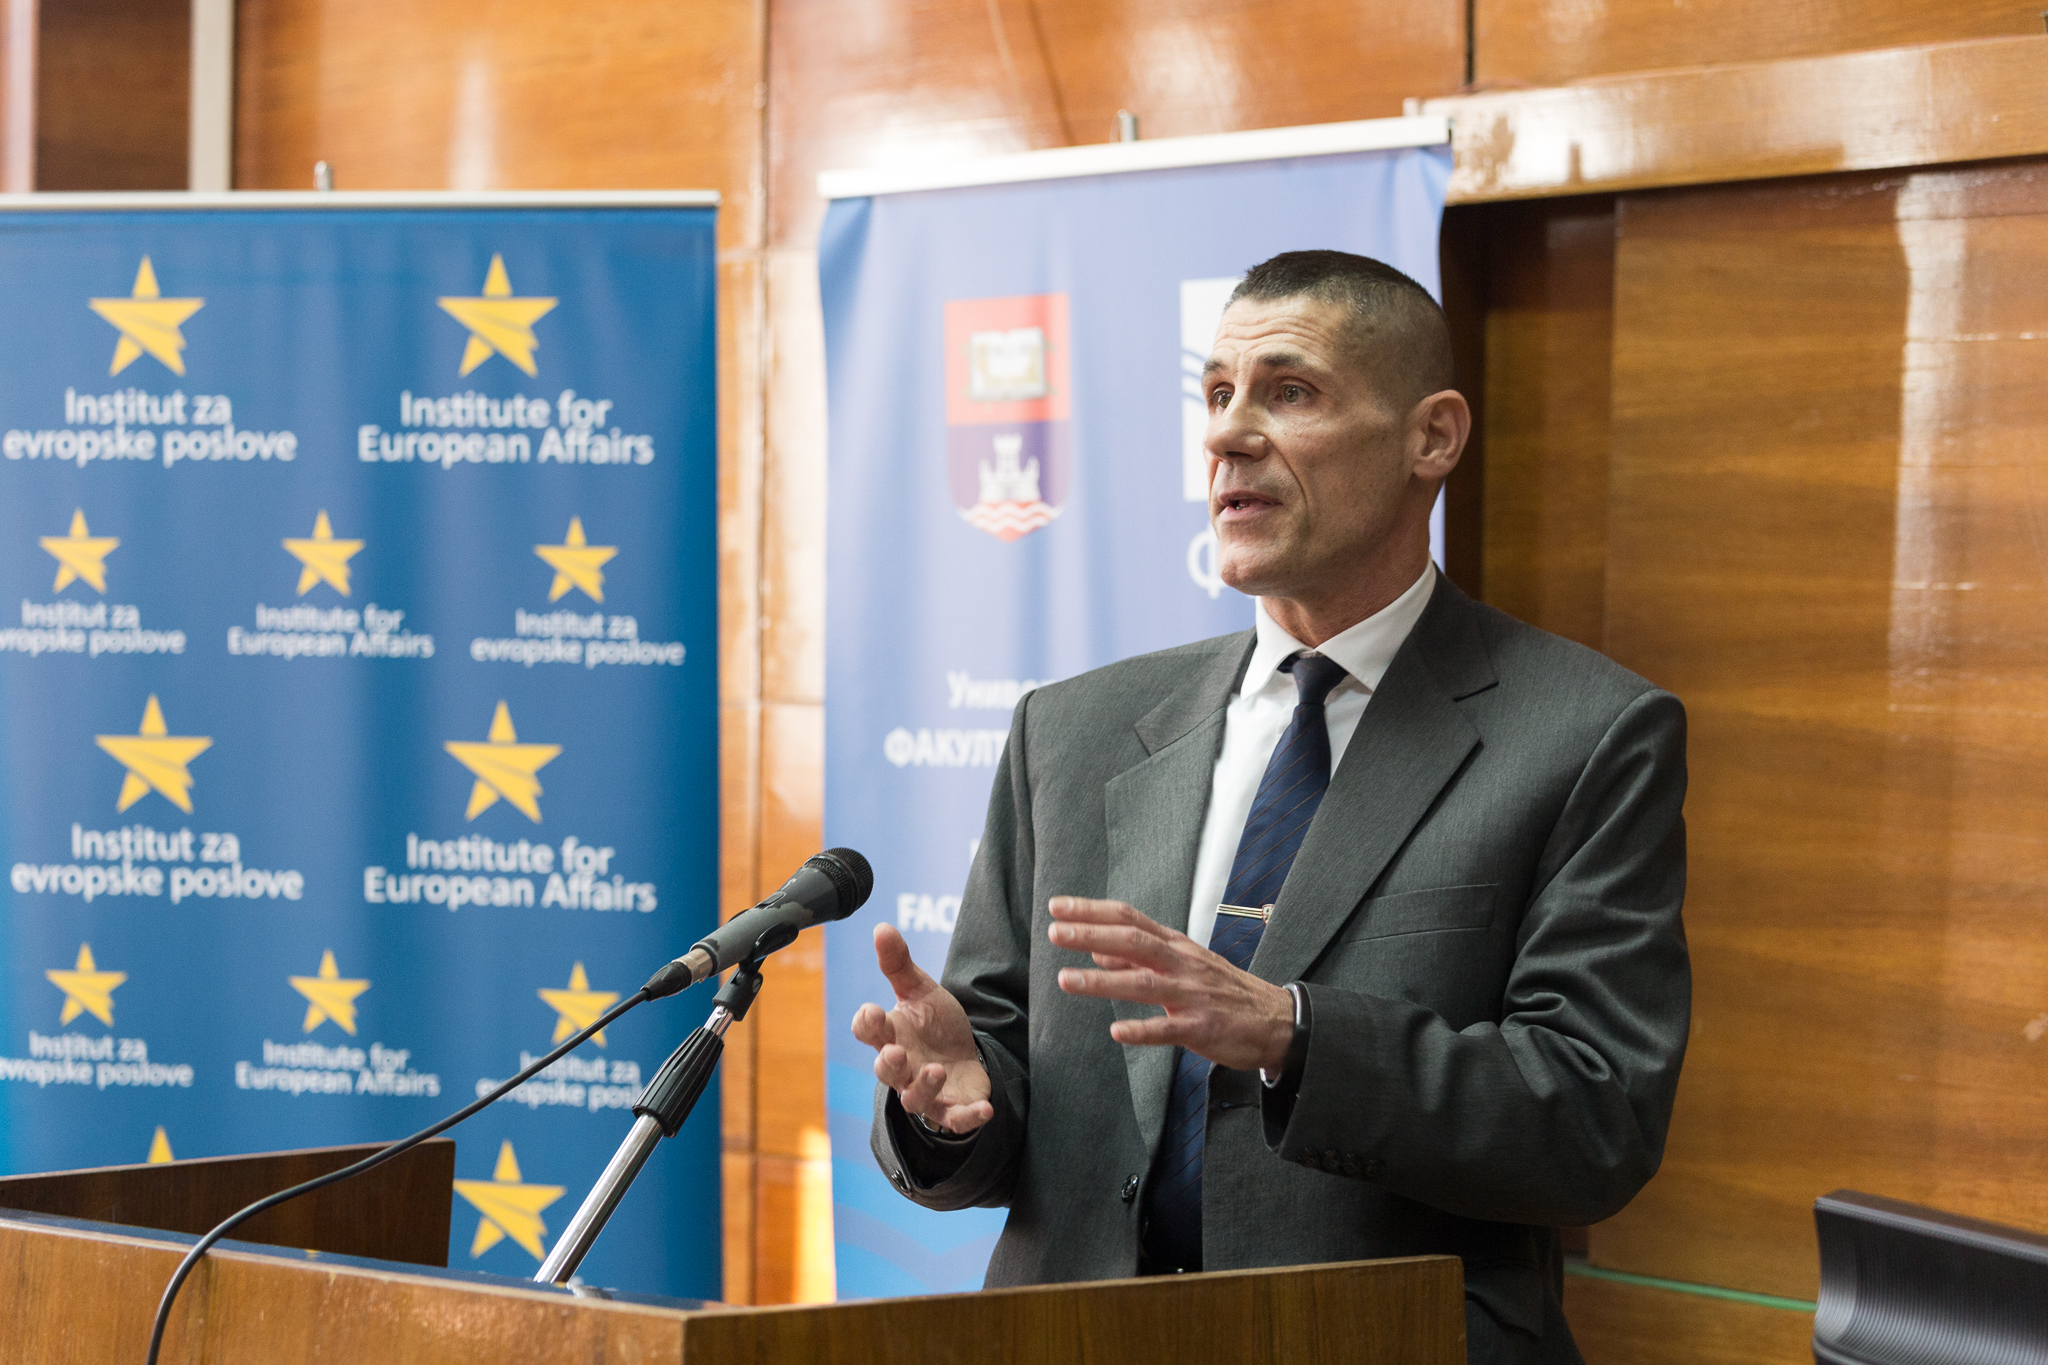 EWB Interview  Marinelli  Serbia-NATO partnership is getting stronger in all  areas d04d6f0af